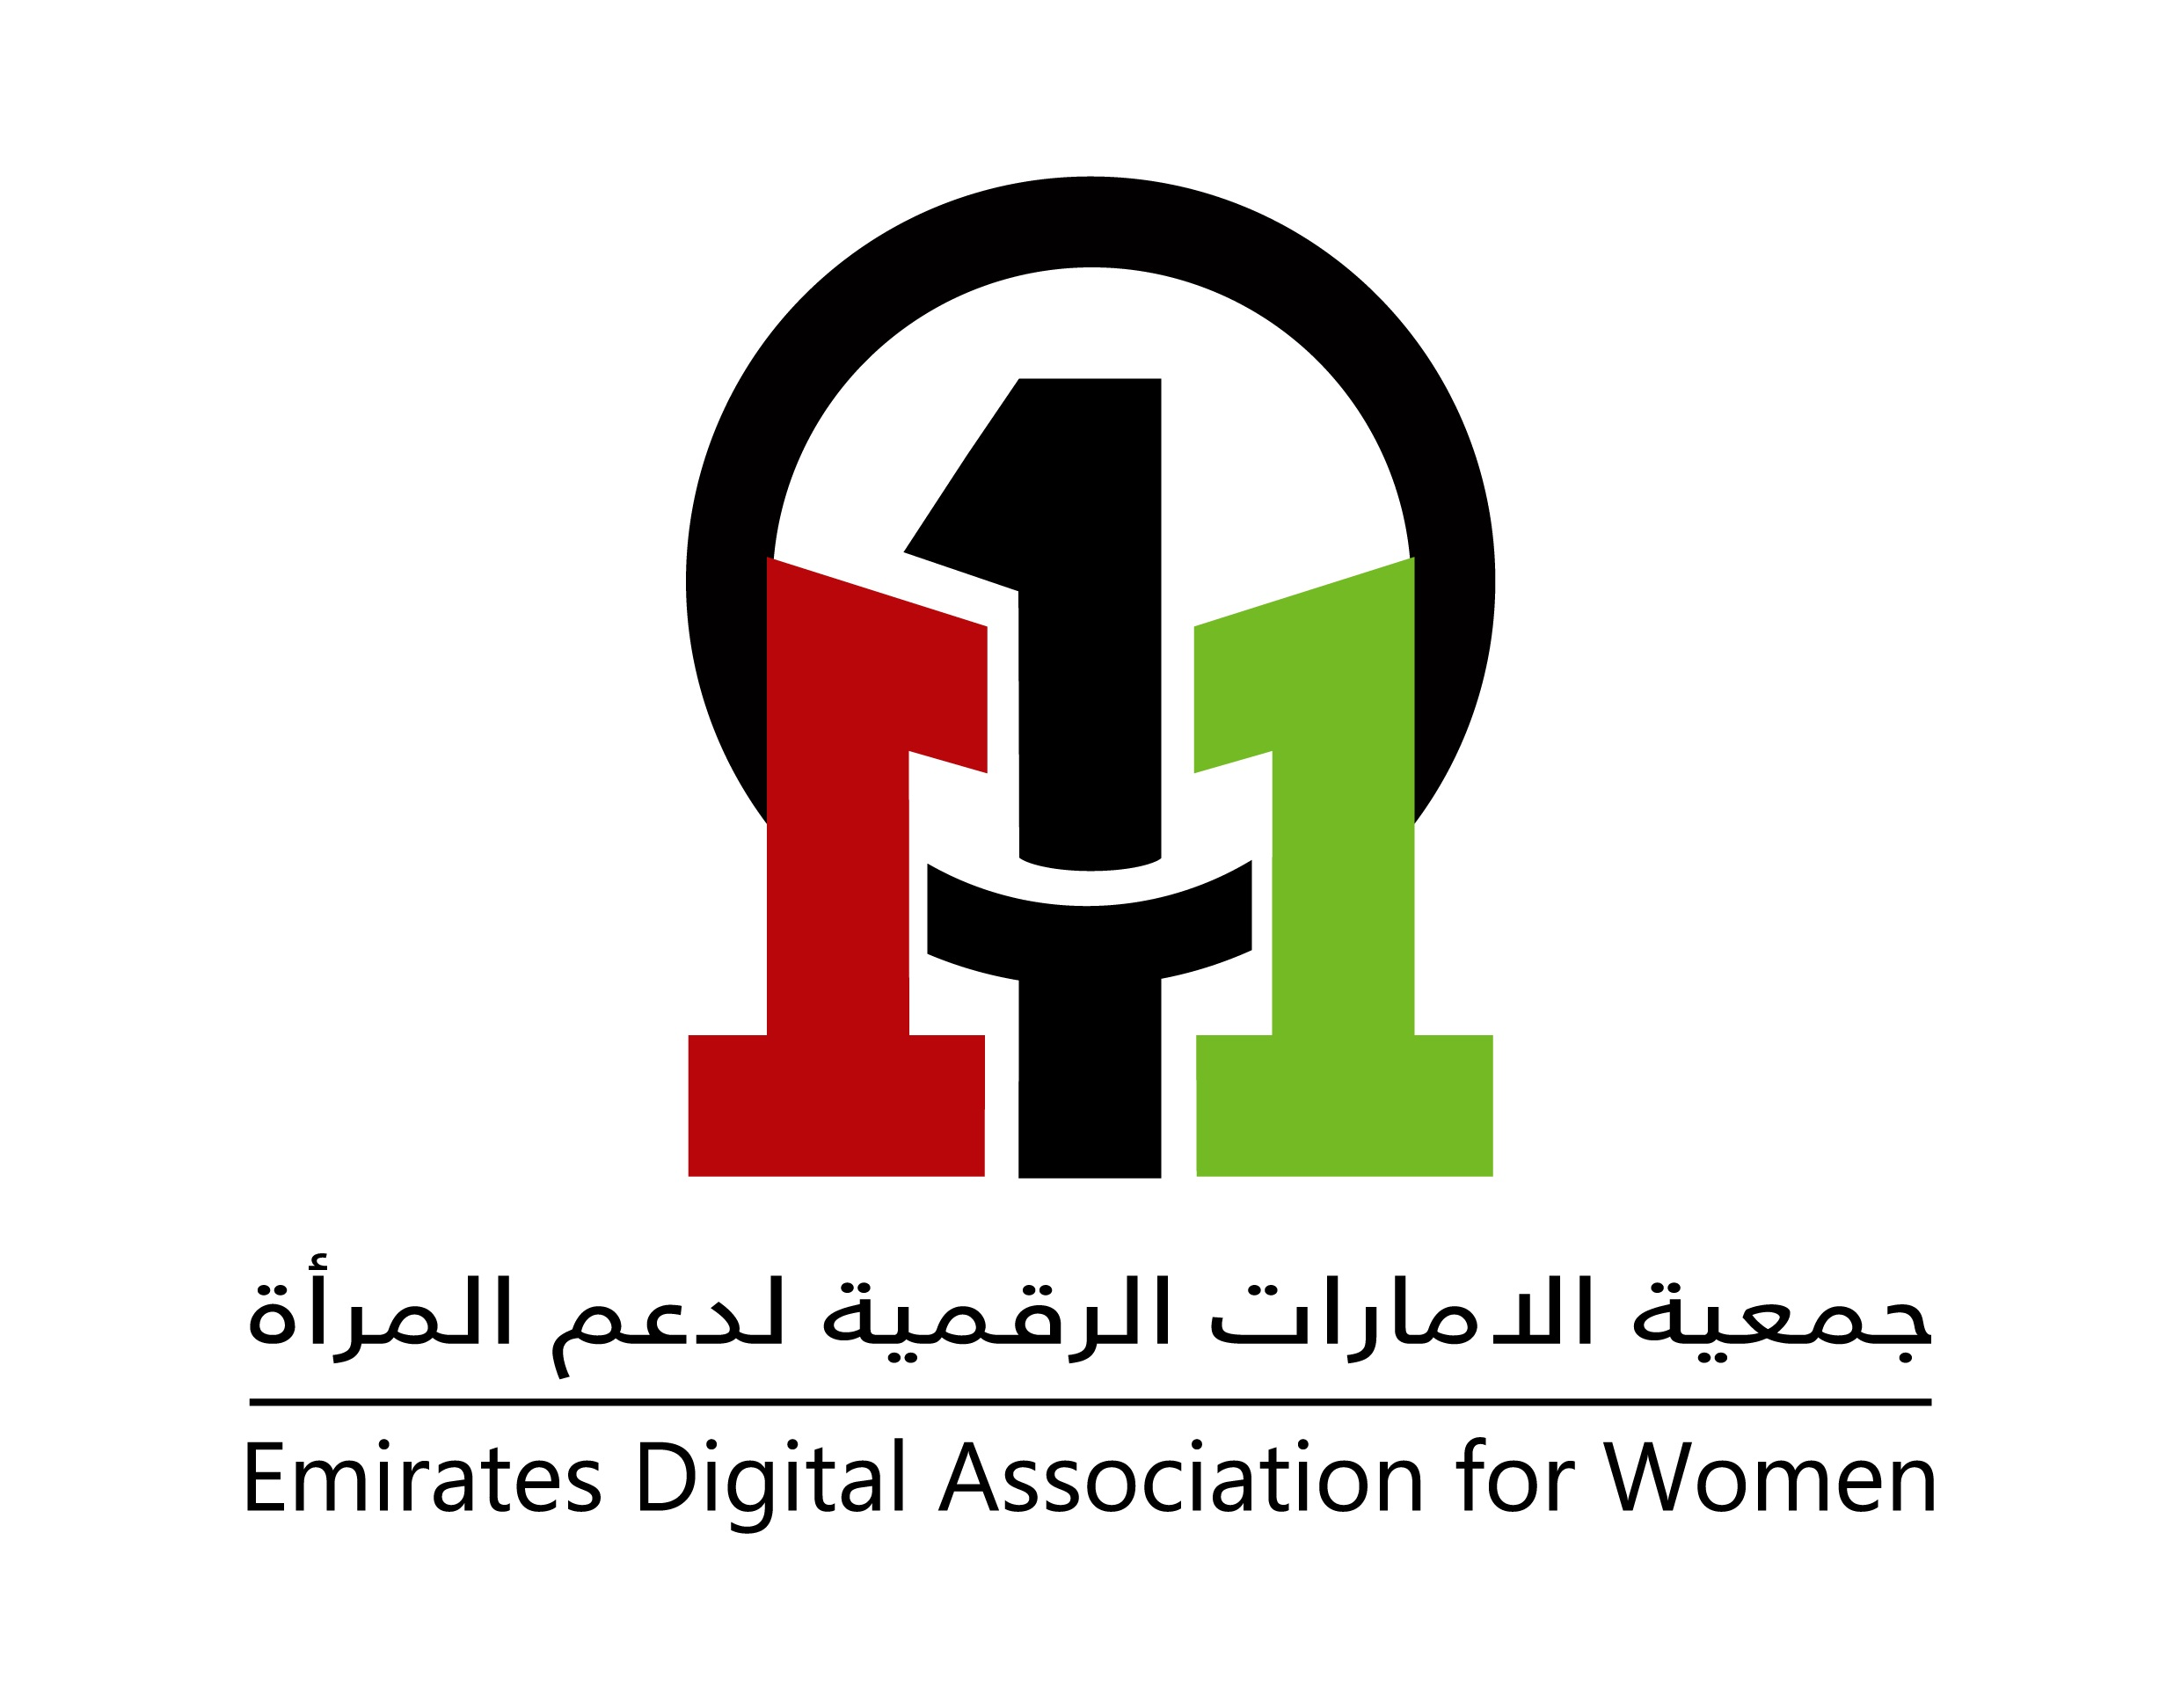 emirates association for women